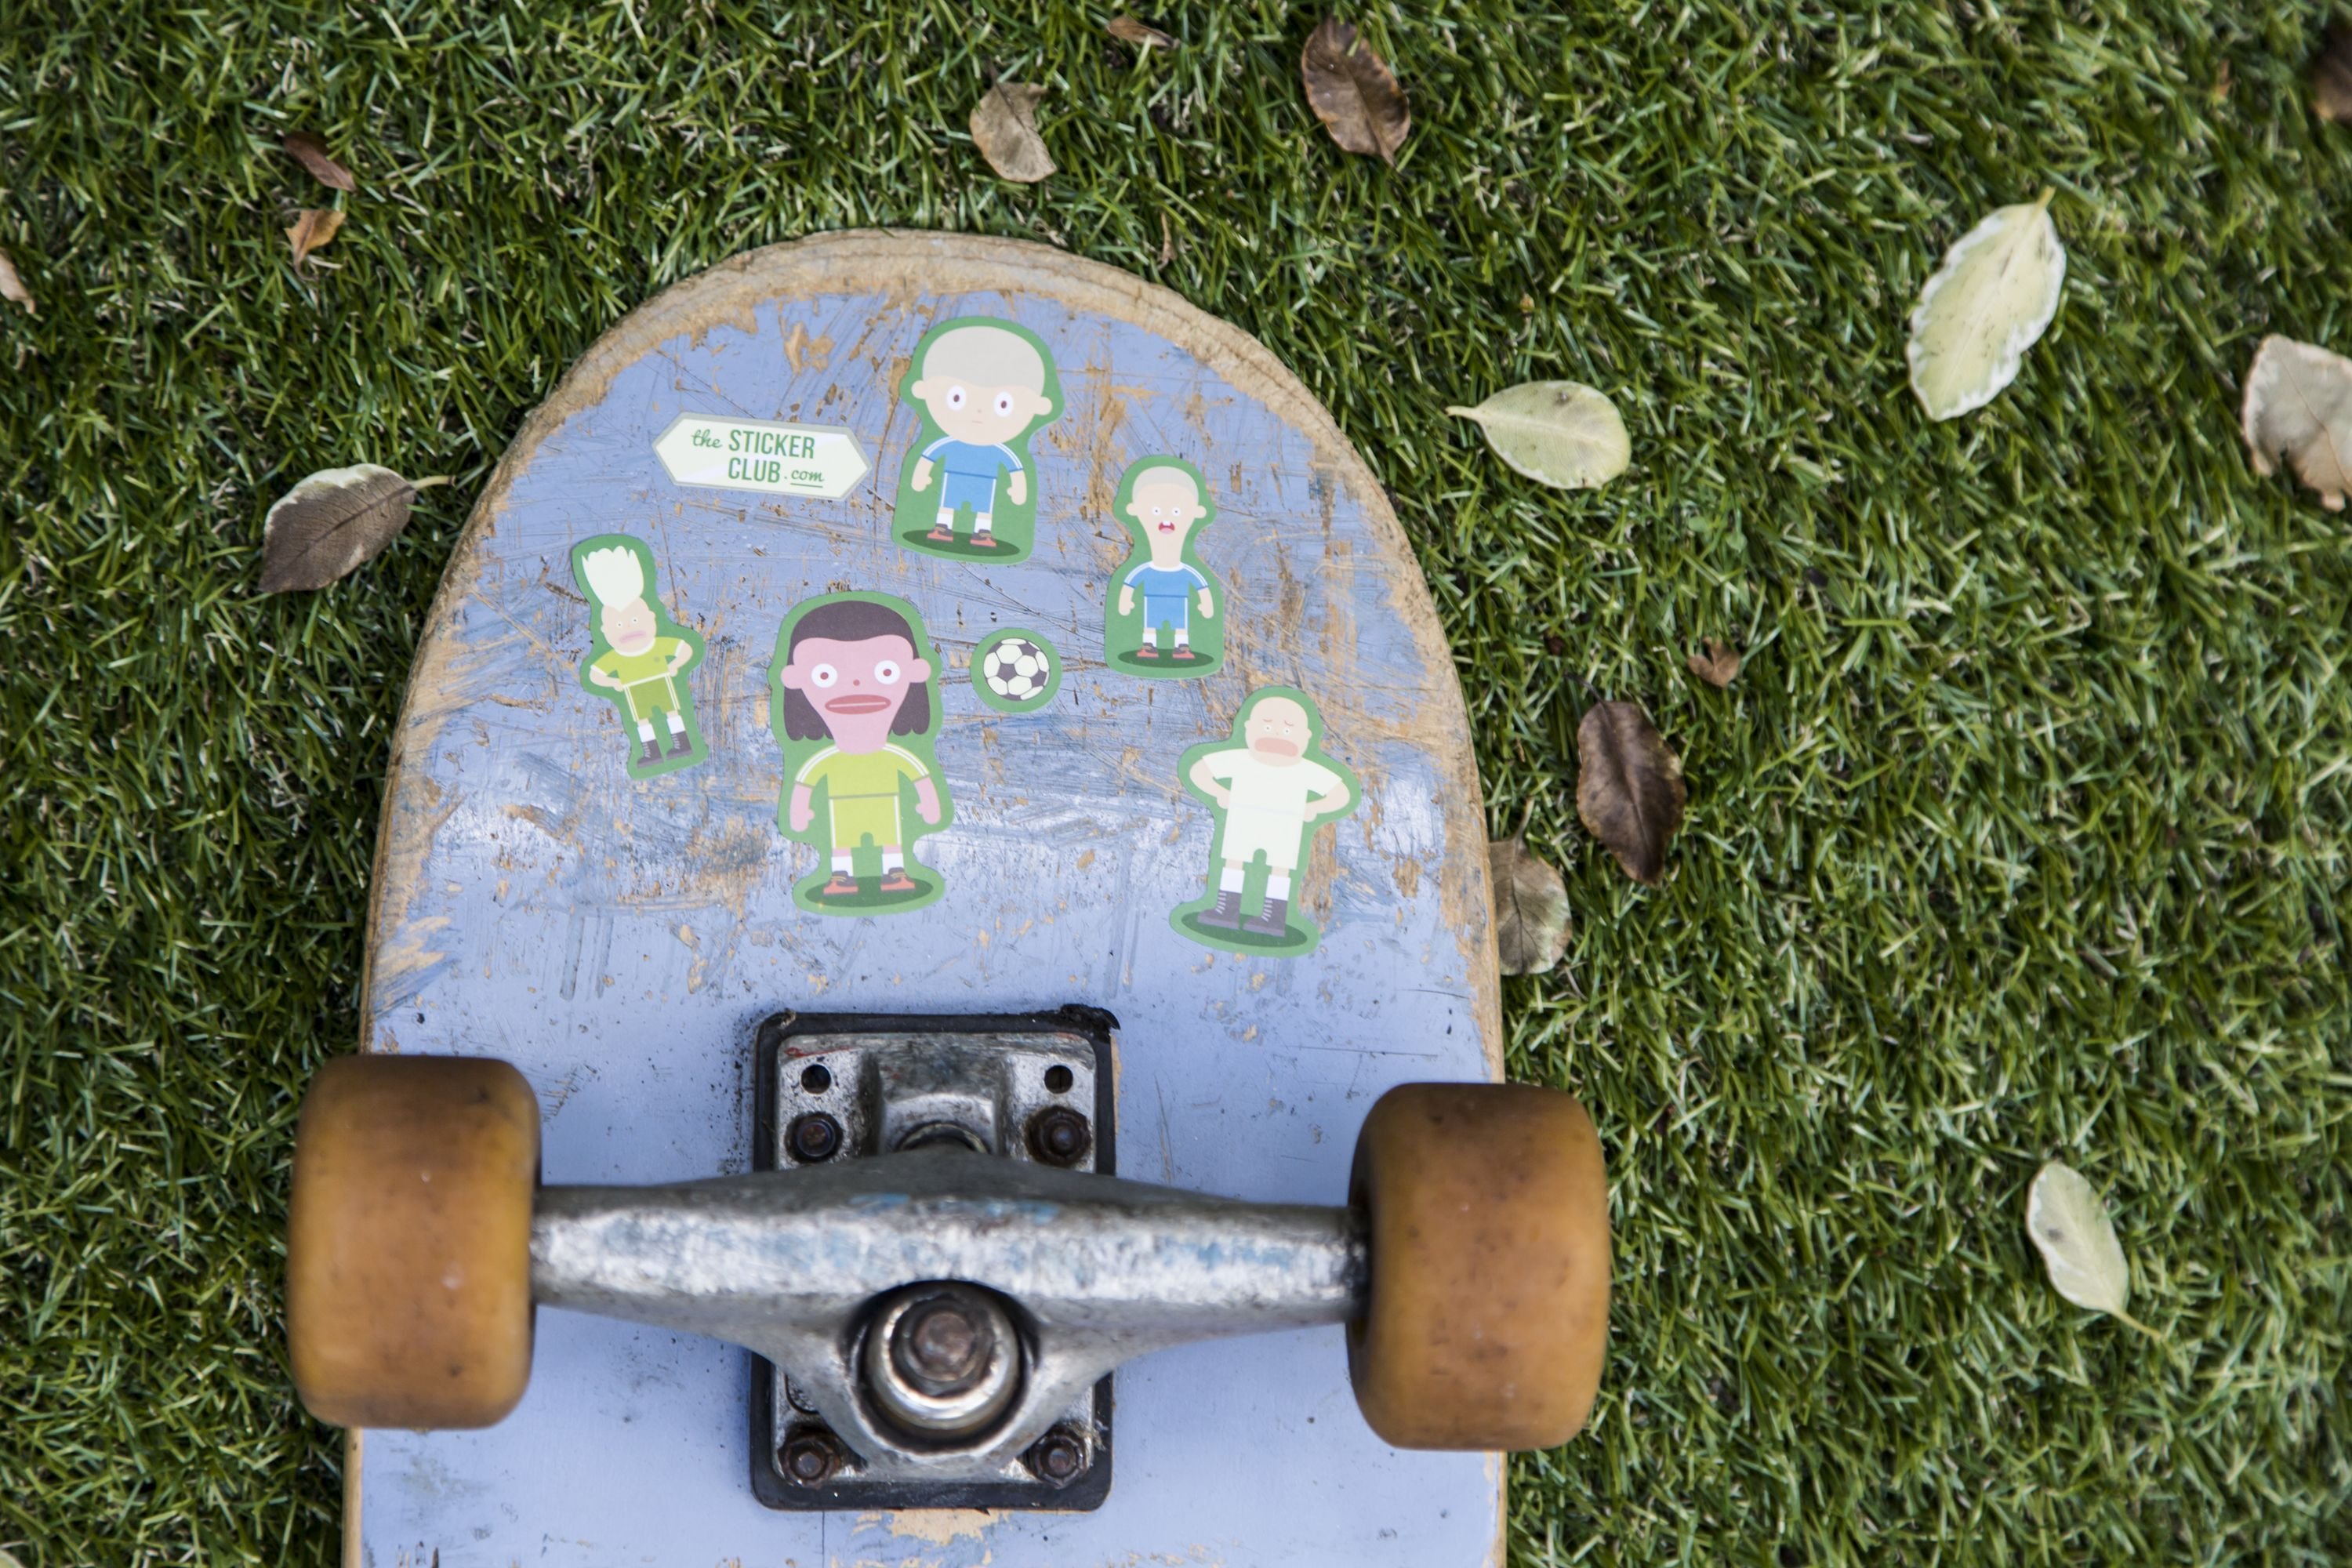 Decorate your skateboard with Sticker Club stickers!